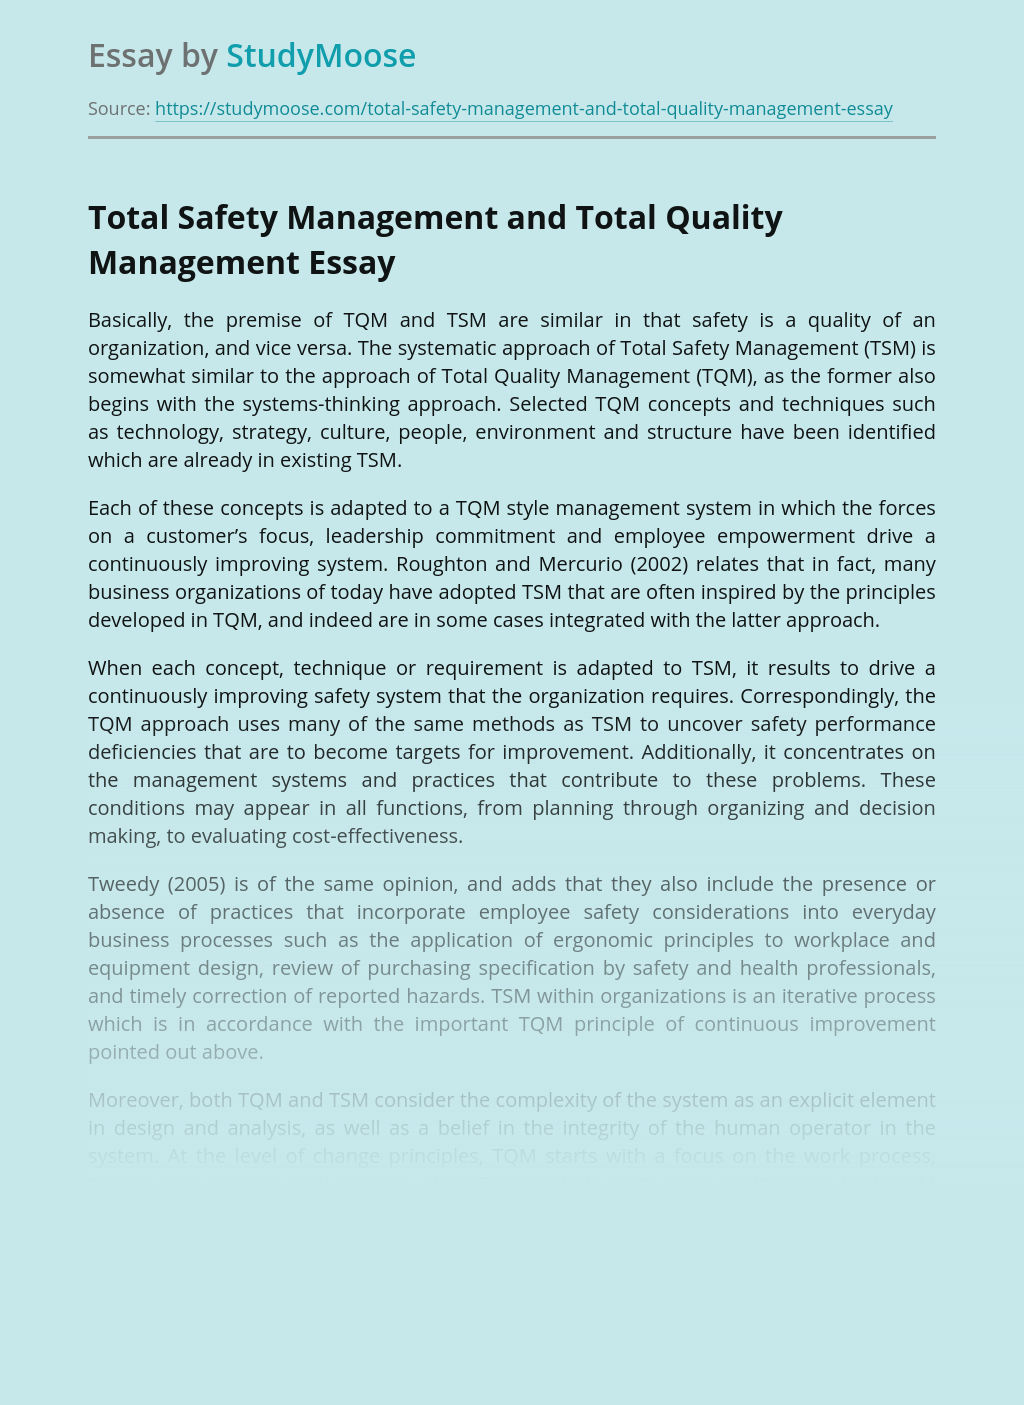 Total Safety Management and Total Quality Management